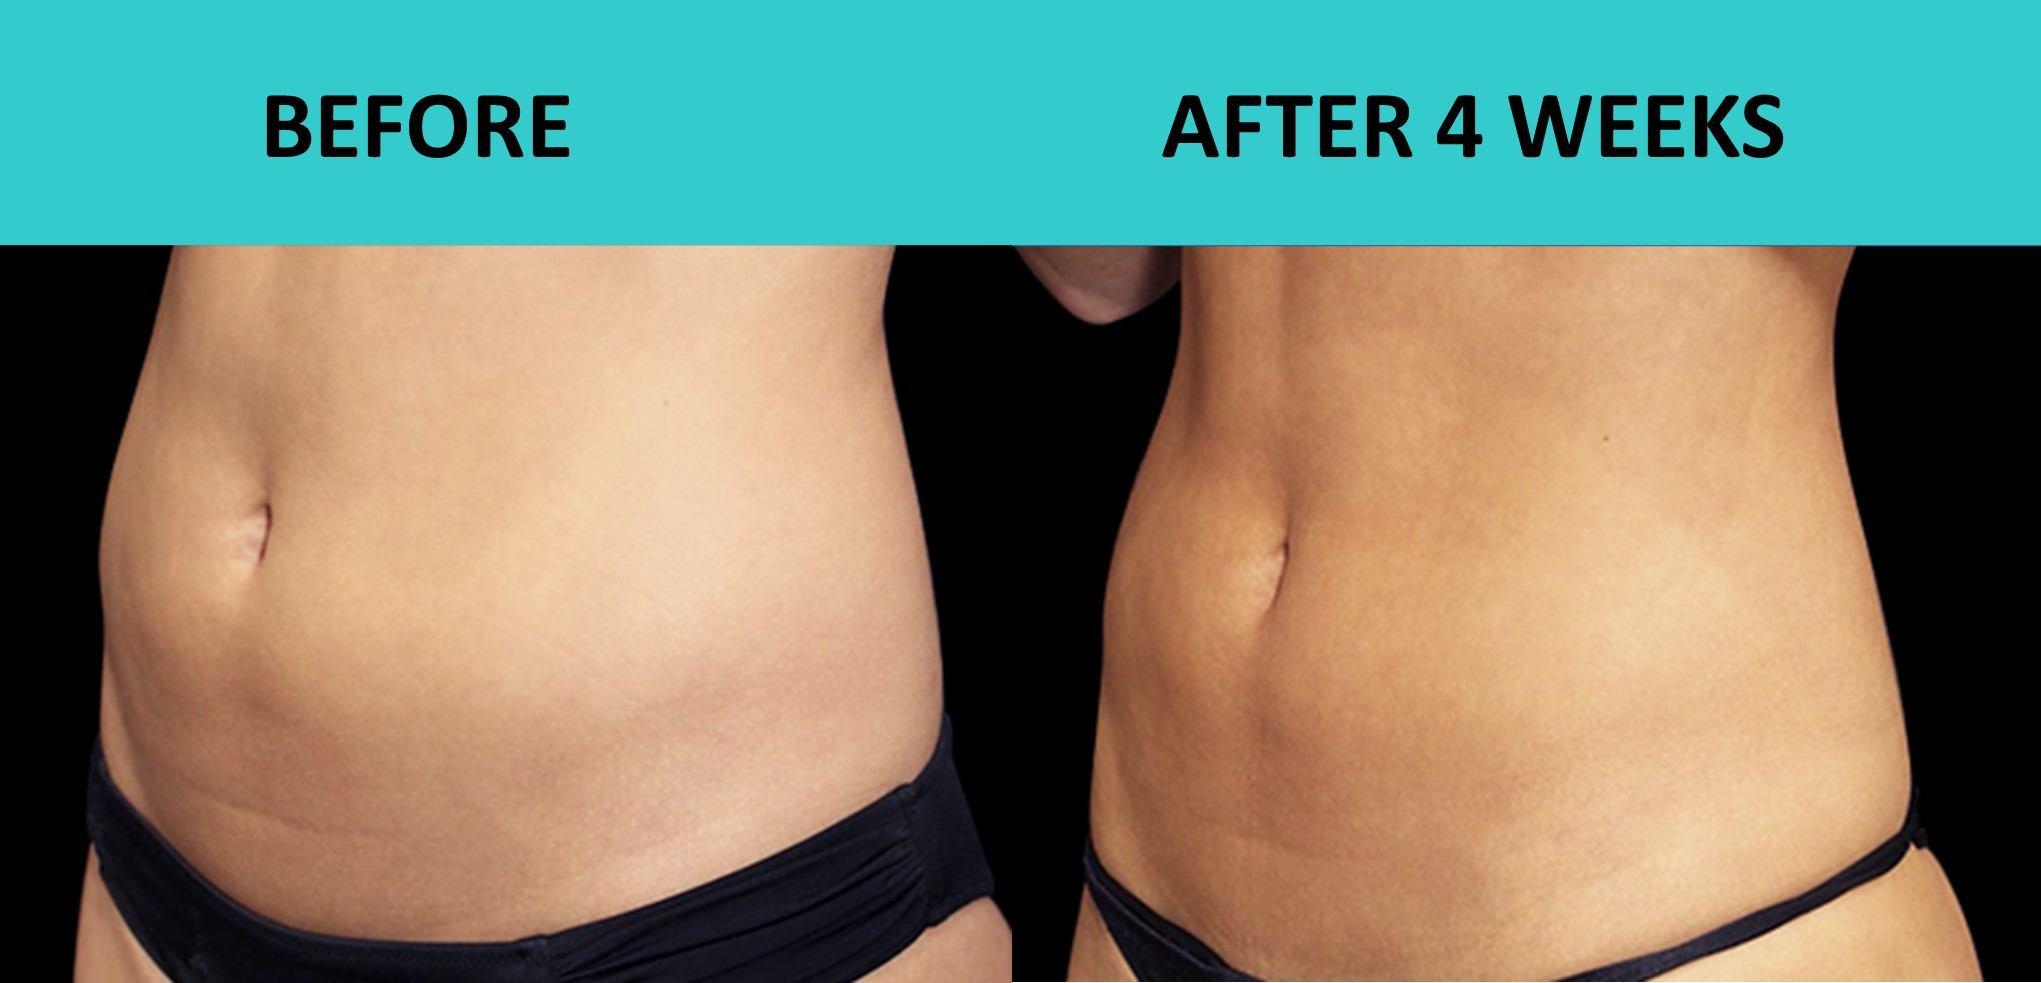 SABA Sculpt – incredible new body sculpting technology produces great results